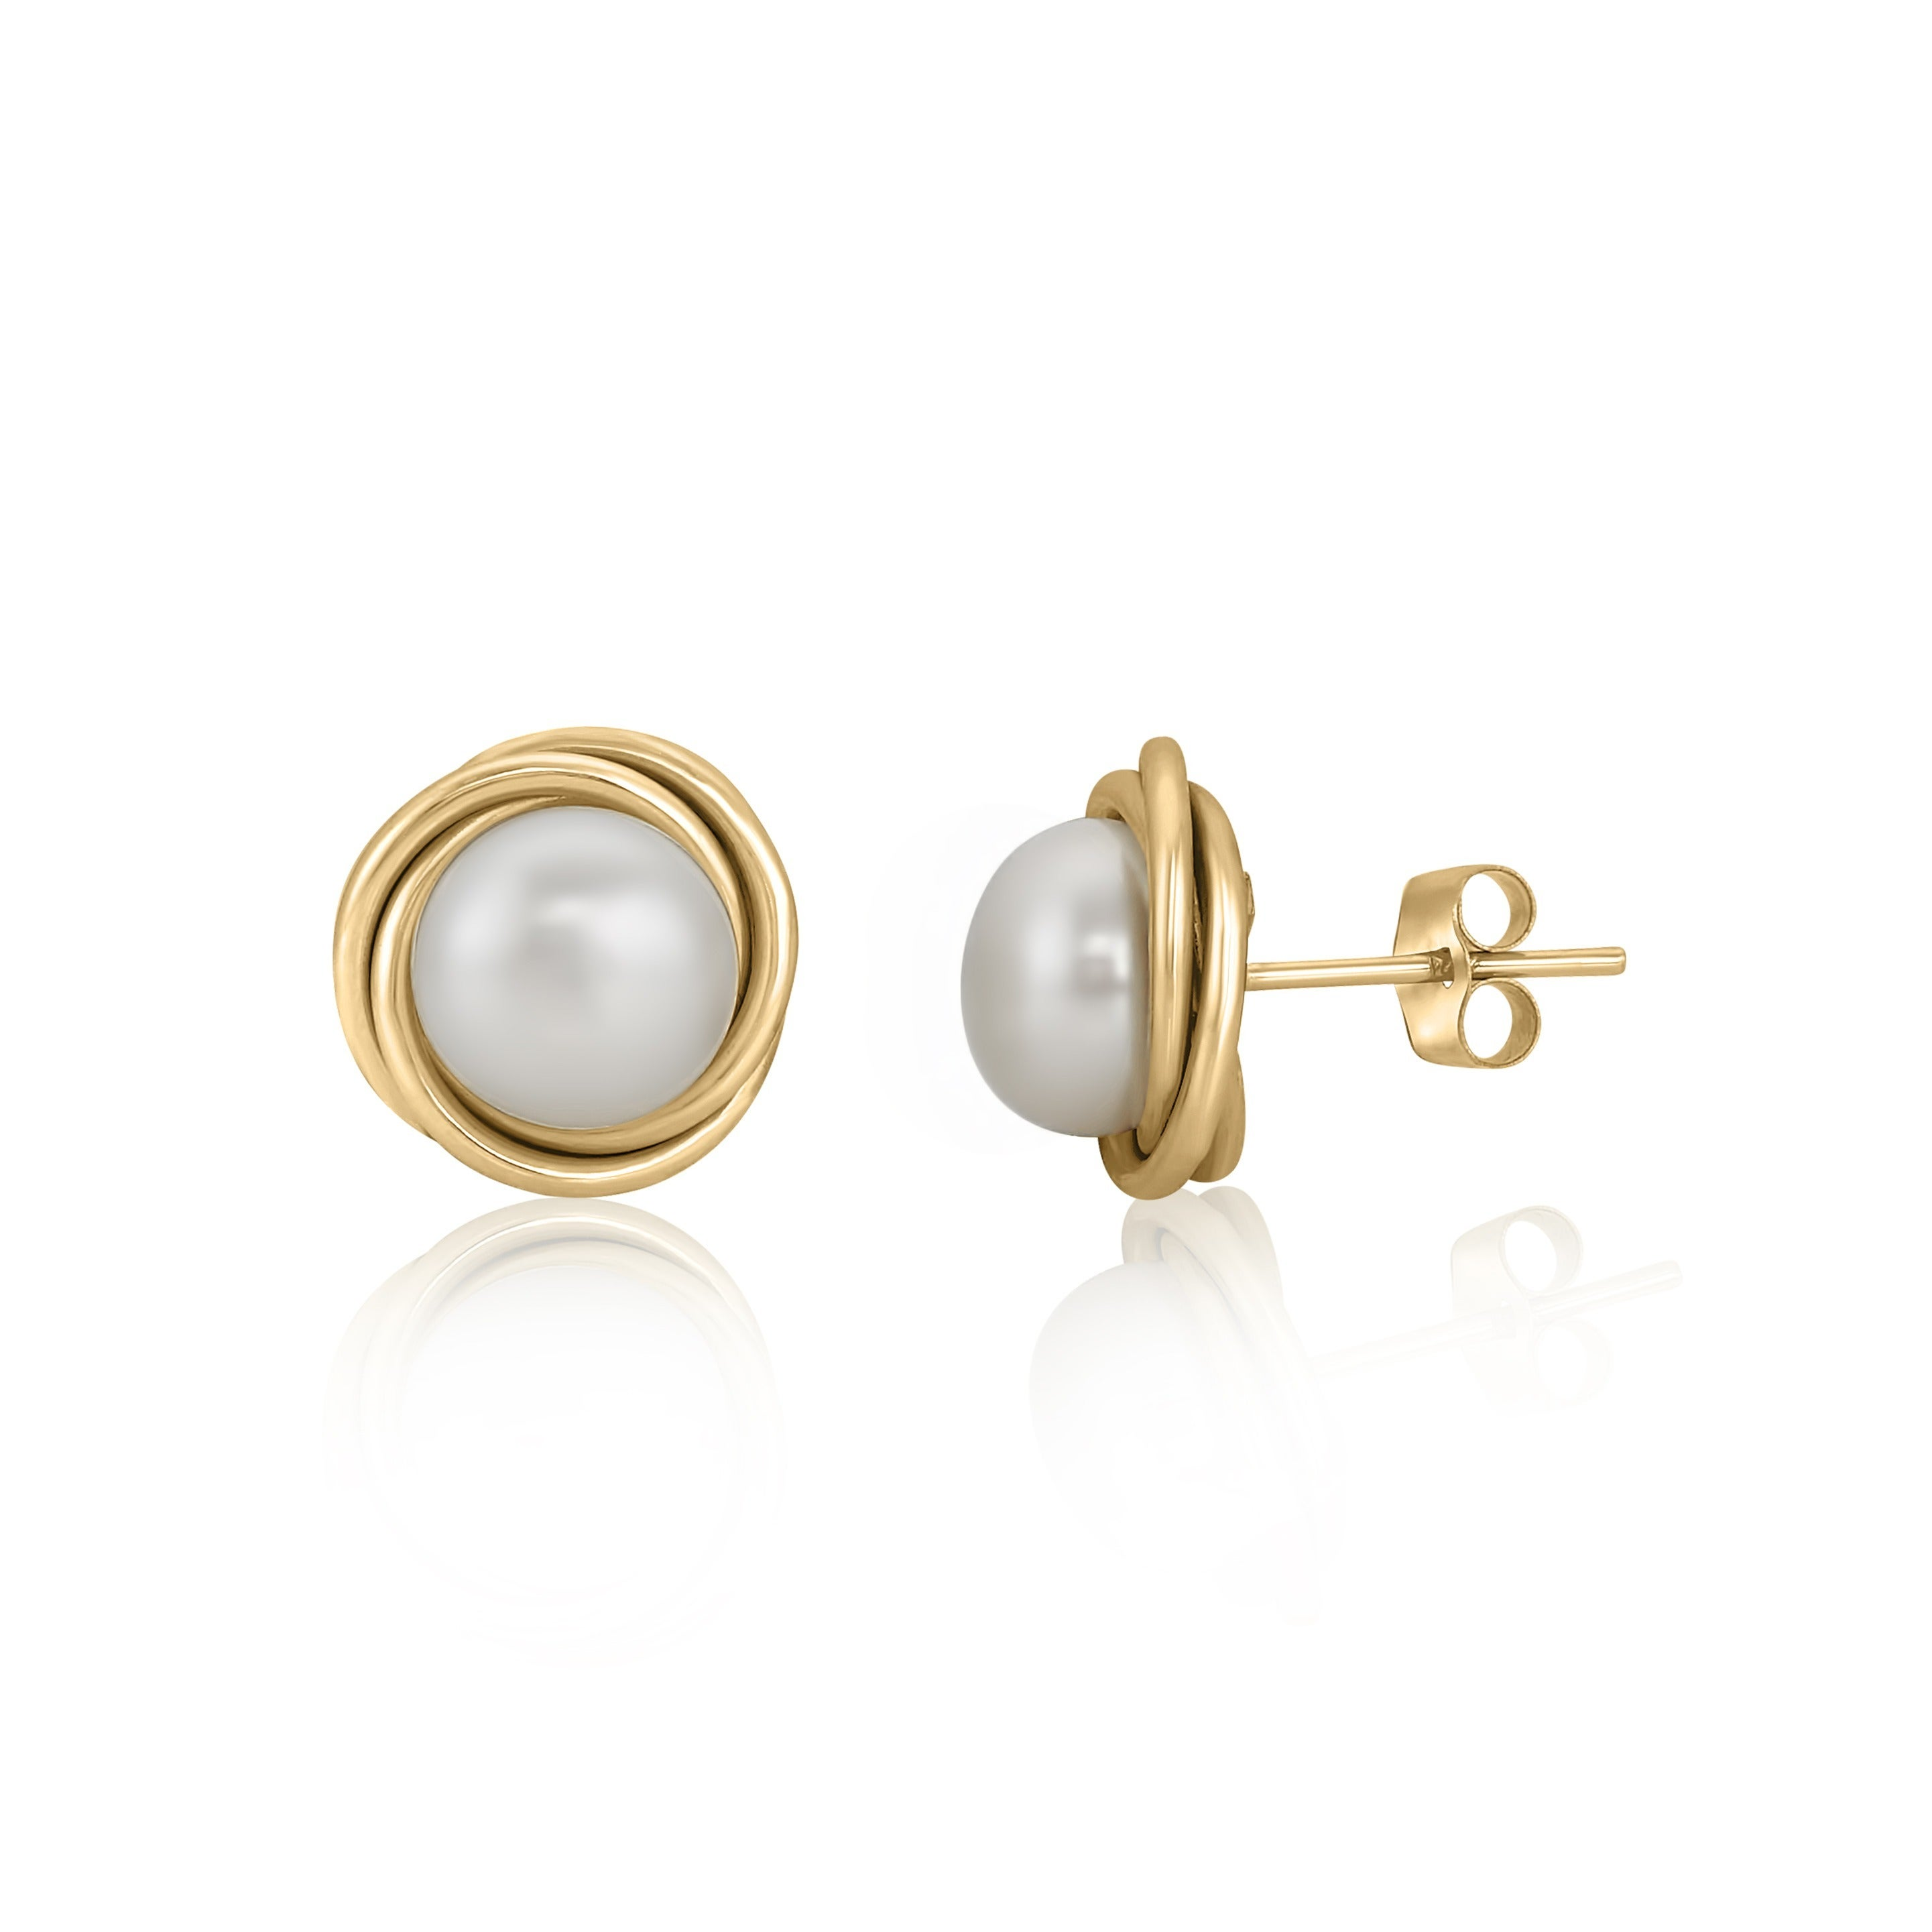 Pearlyta 14k Gold Love Knot Freshwater Pearl Stud Earrings With Gift Box 5mm White